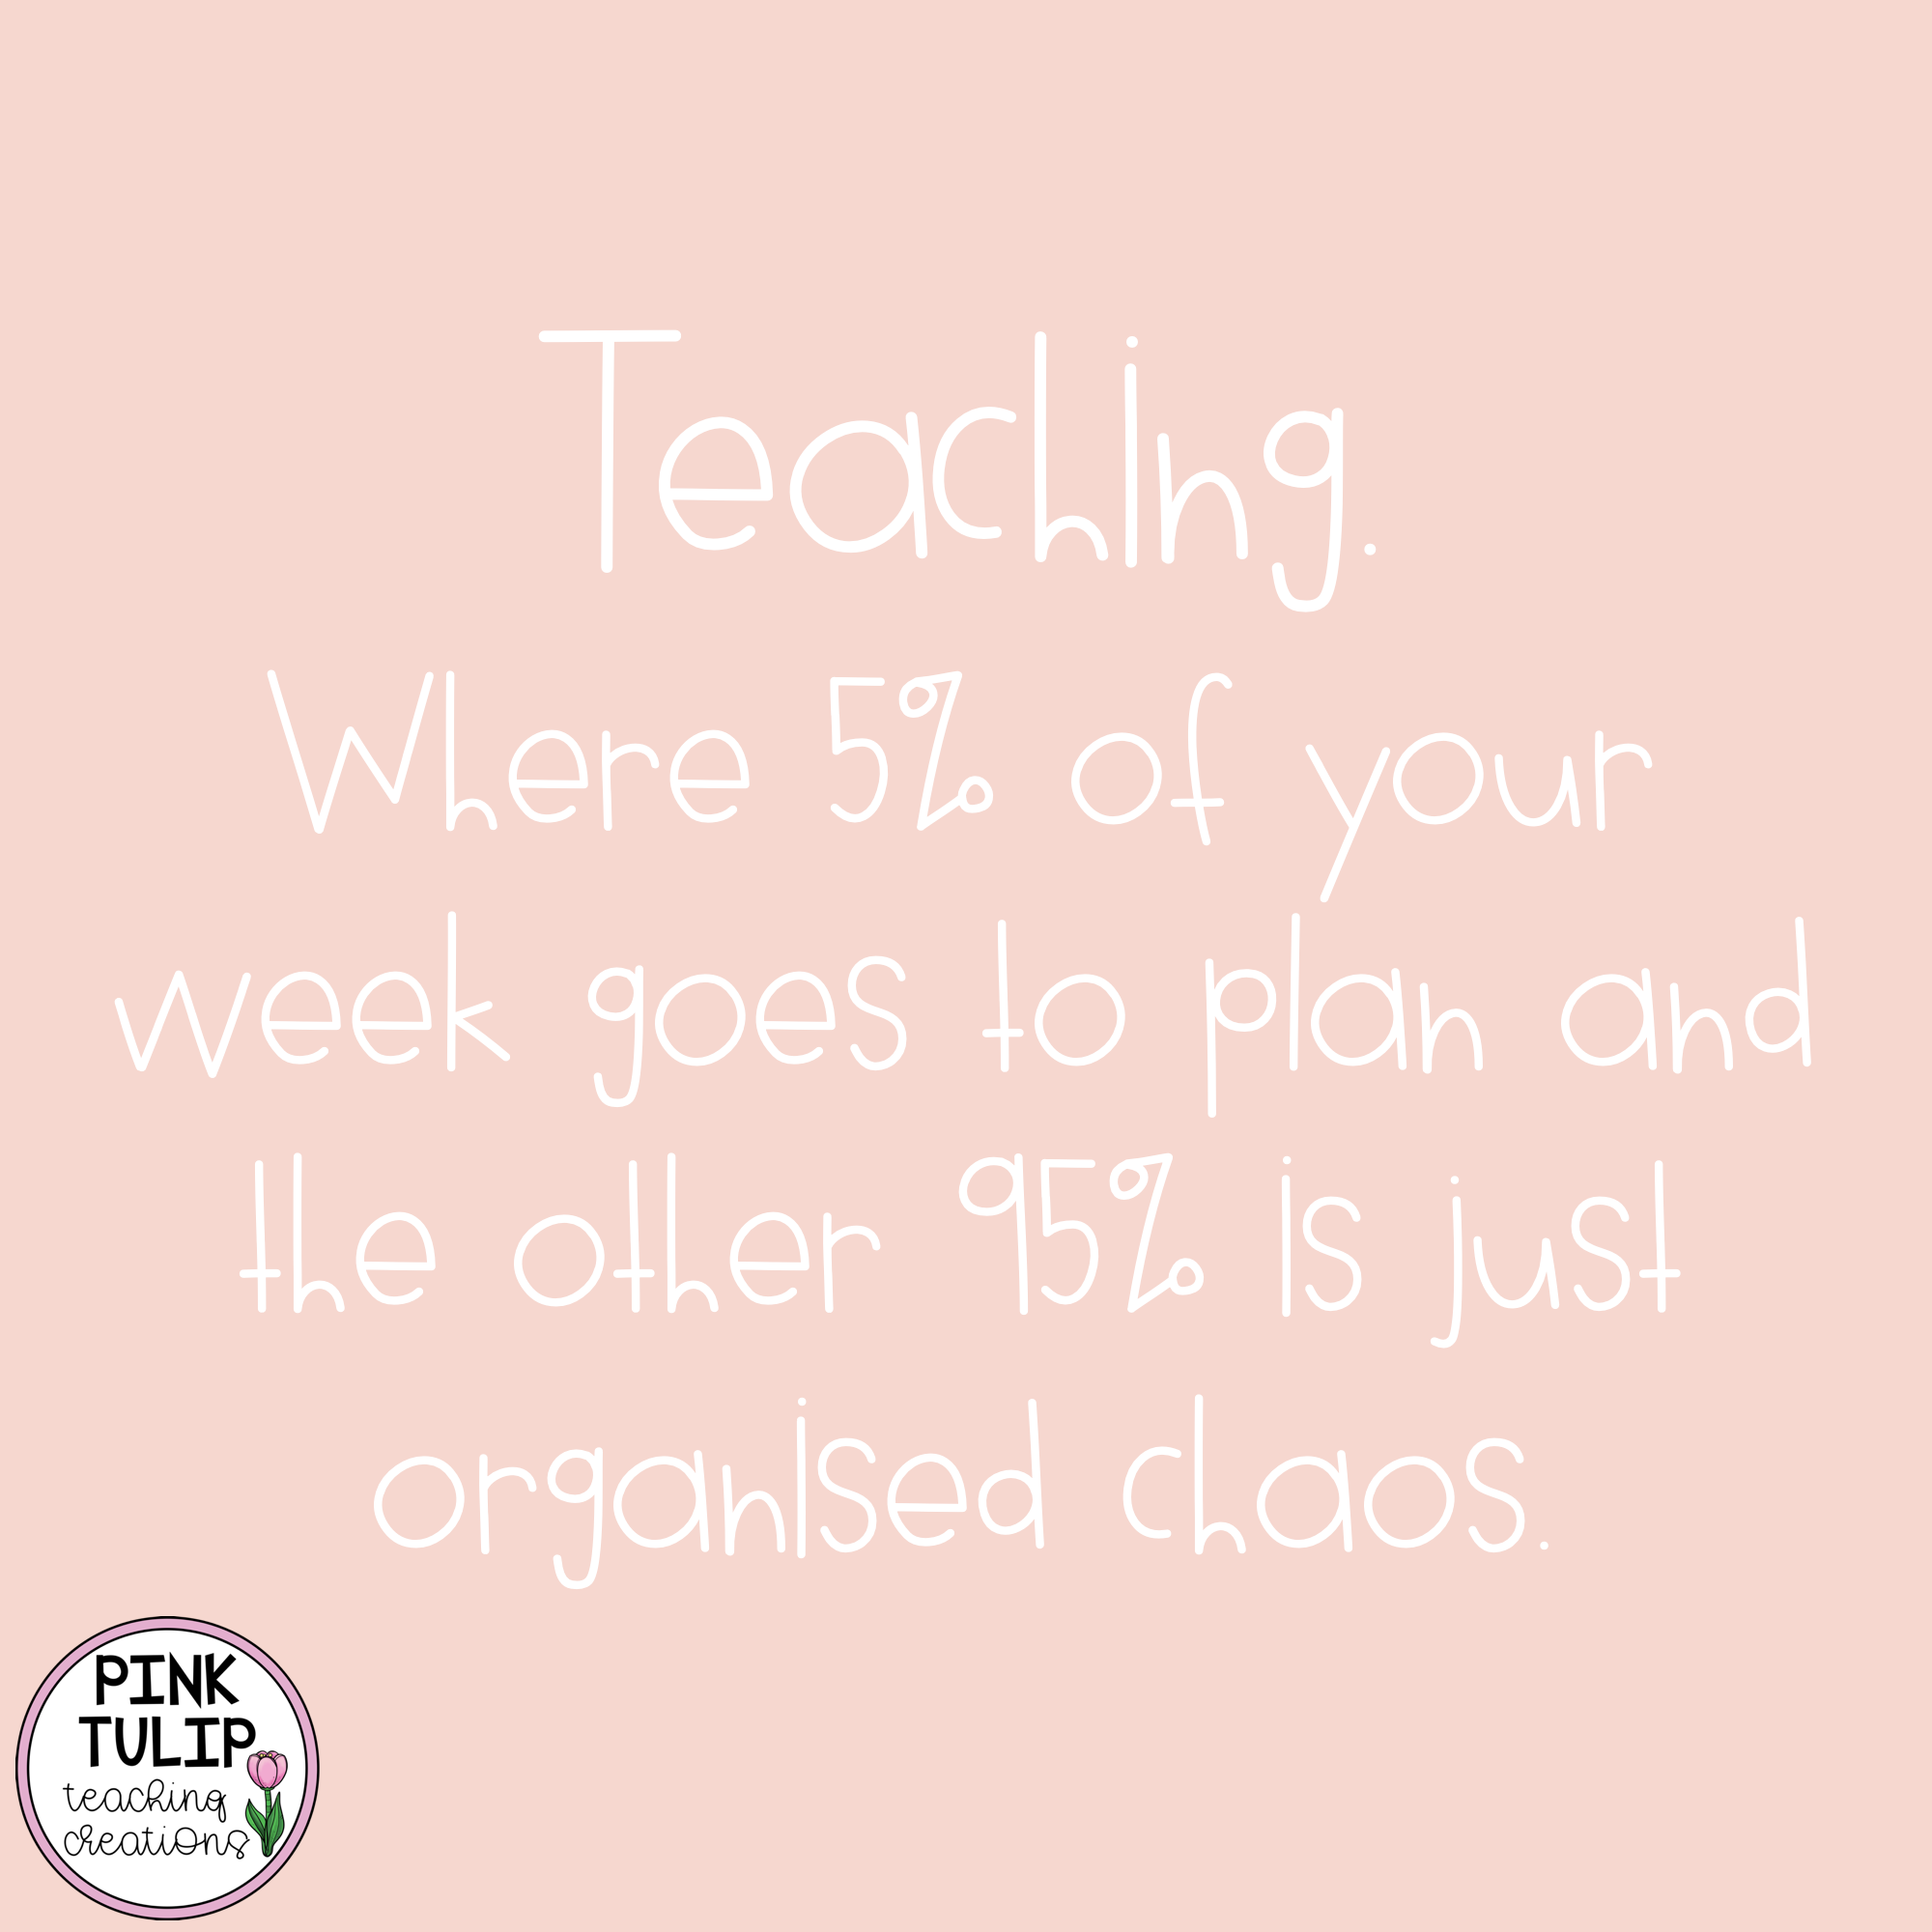 Teaching Where 5 Of Your Week Goes To Plan And The Other